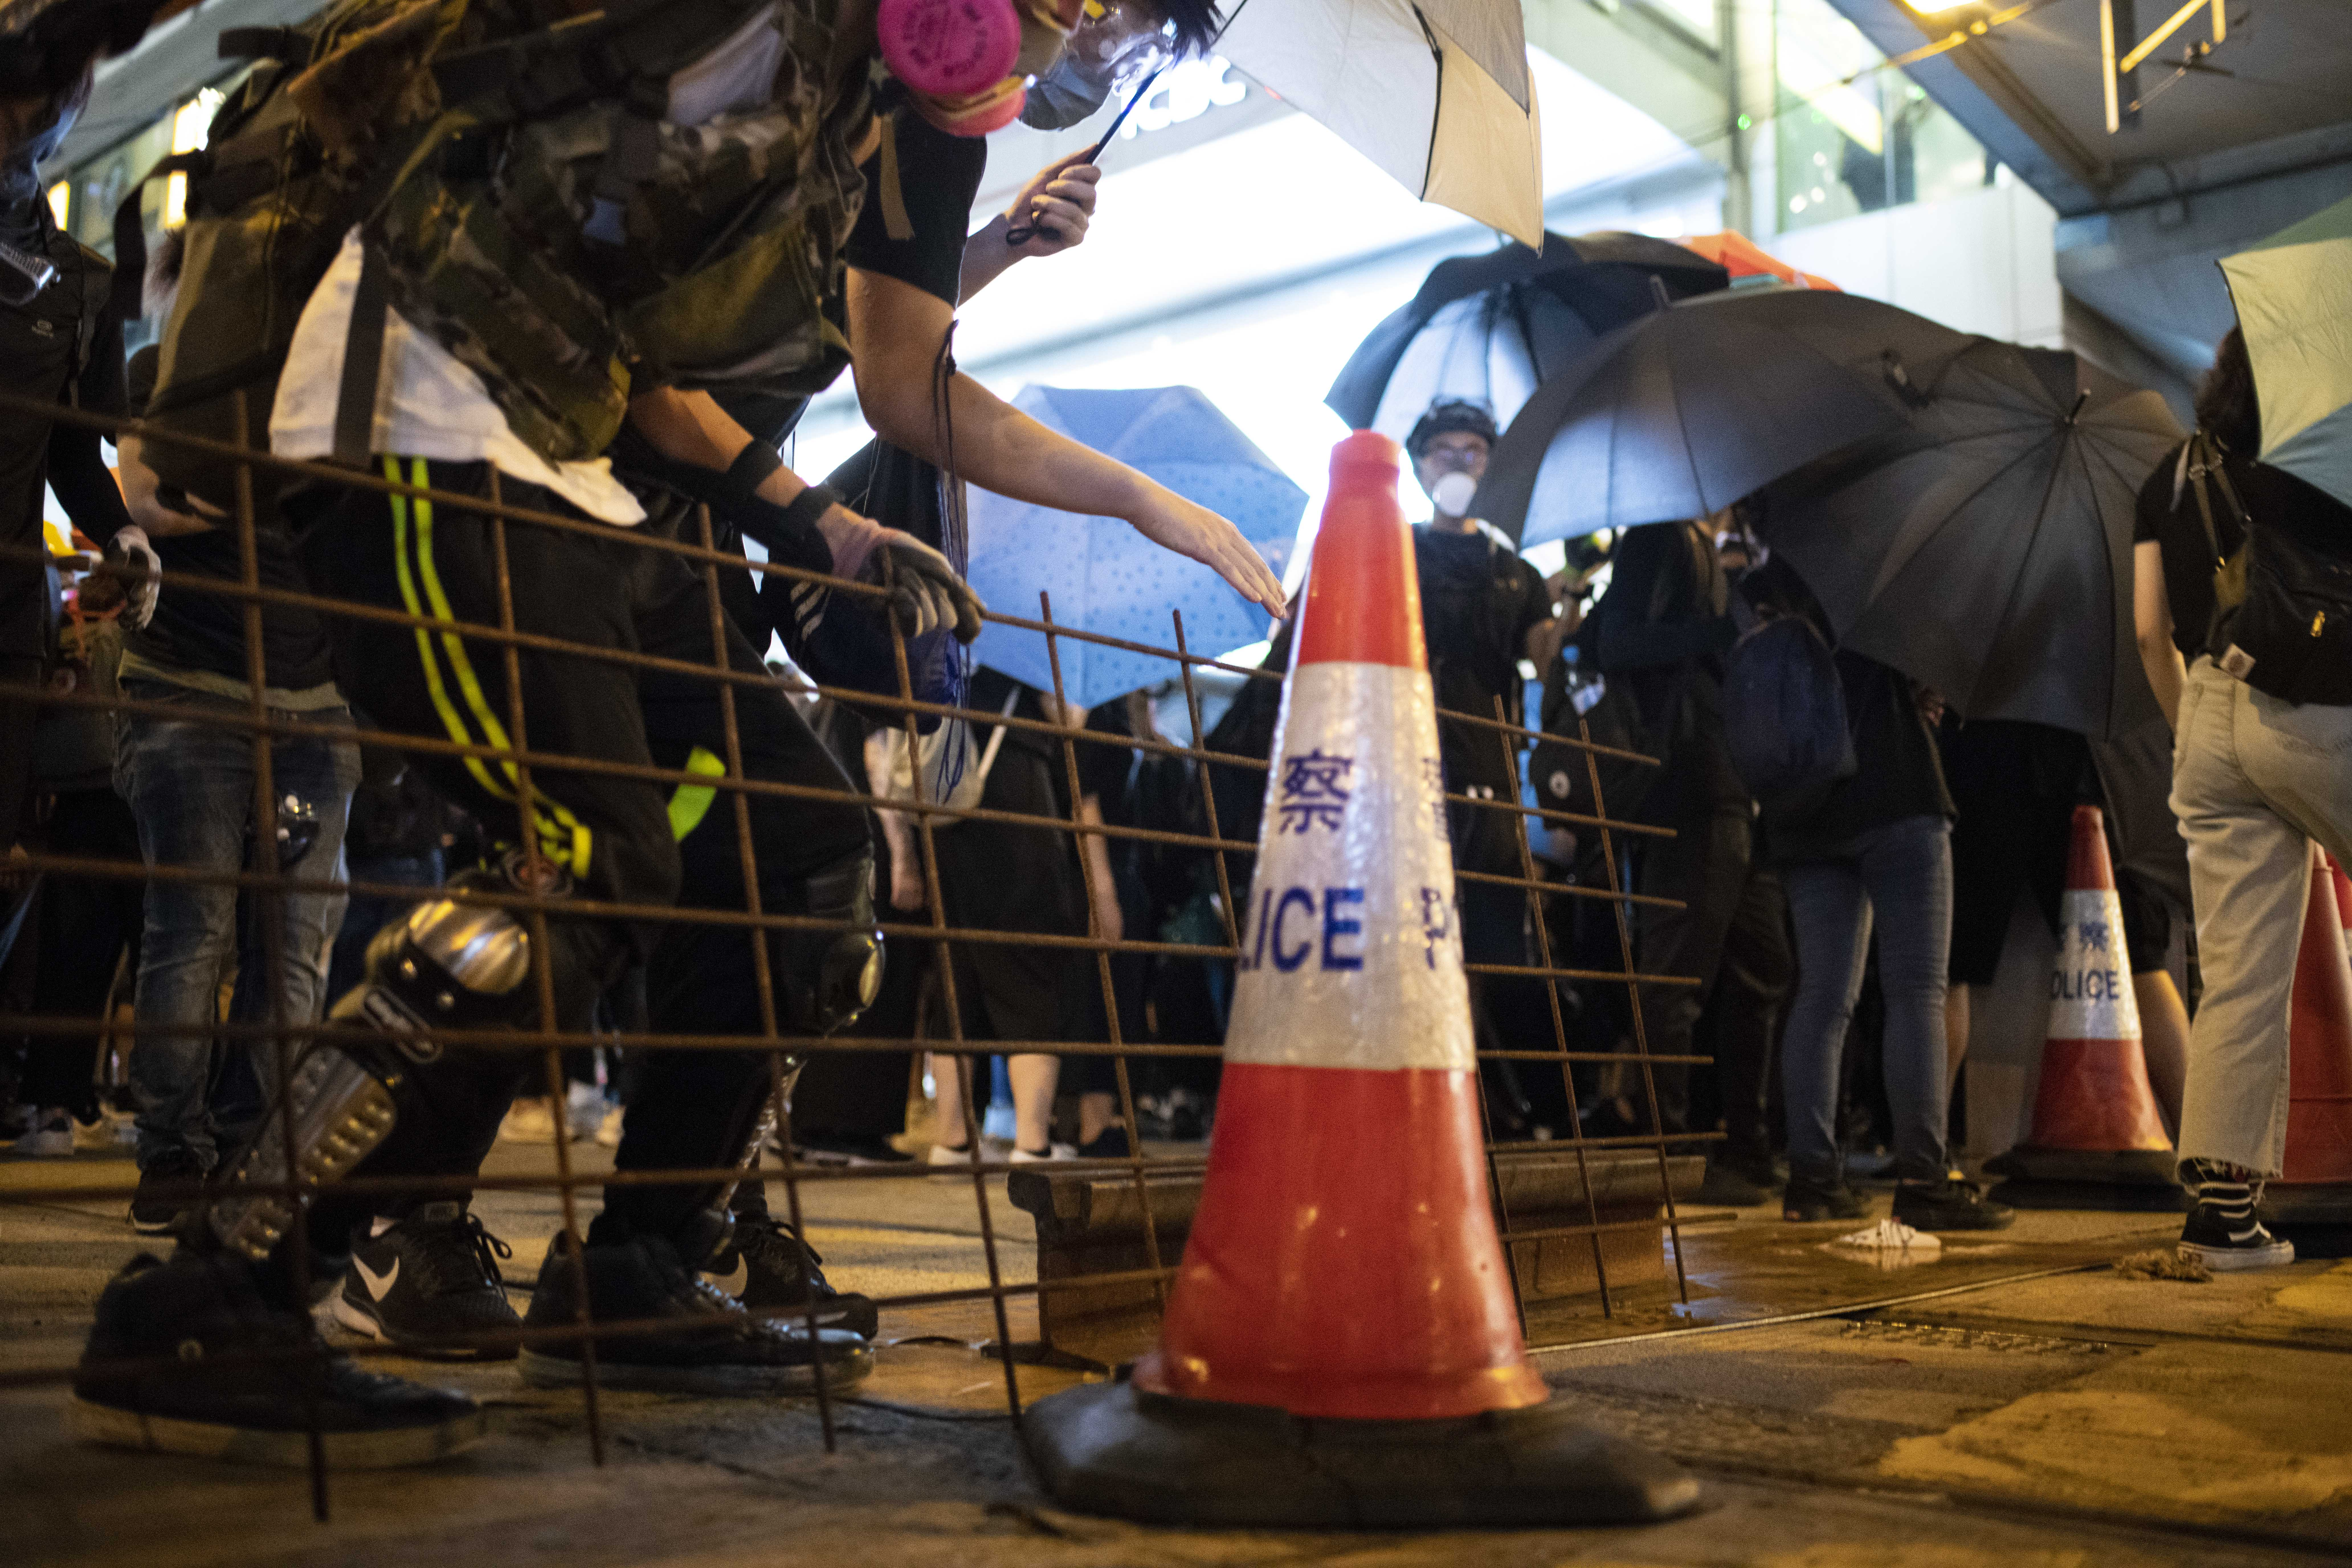 Protesters set impromptu barricades in Causeway Bay Sunday night.